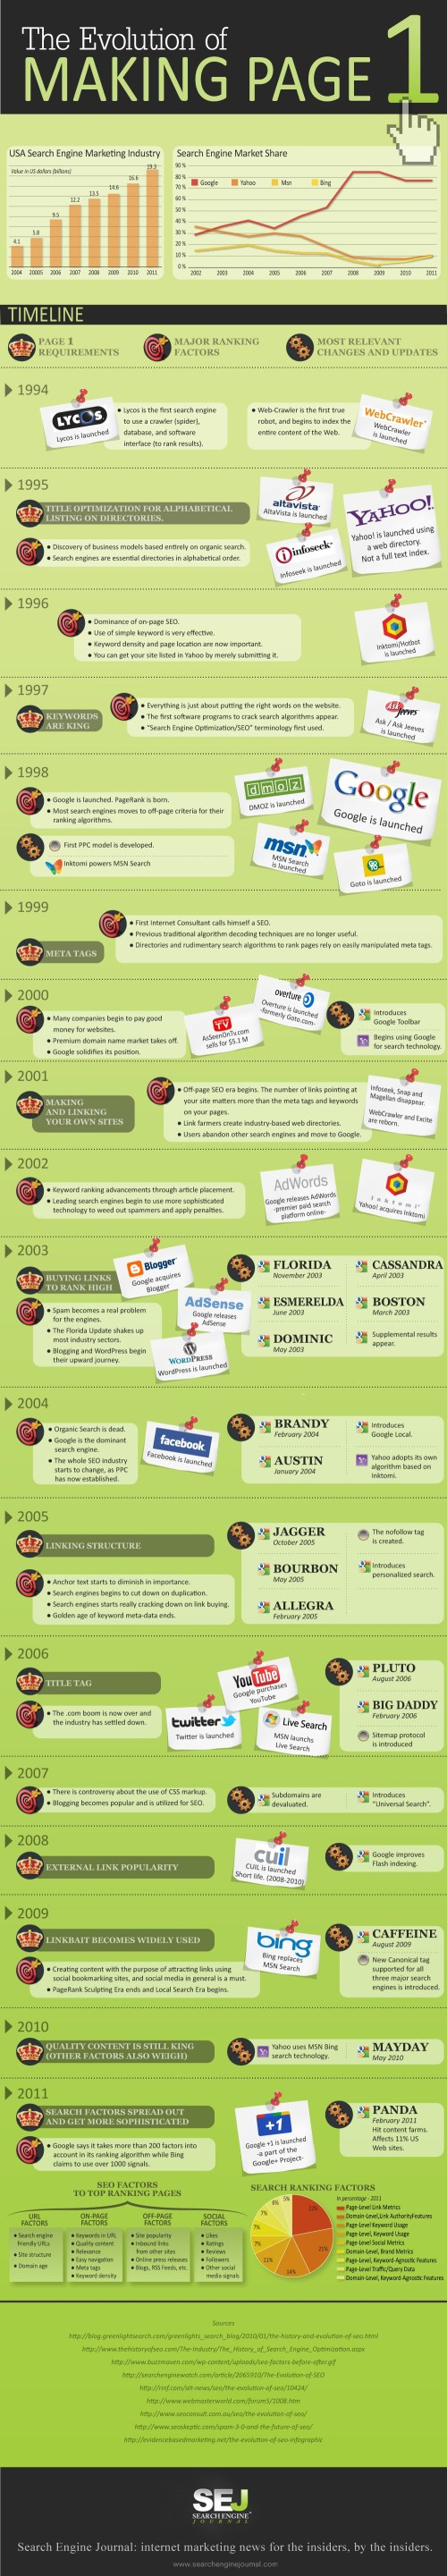 The Evolution of Making Page 1[INFOGRAPHIC]